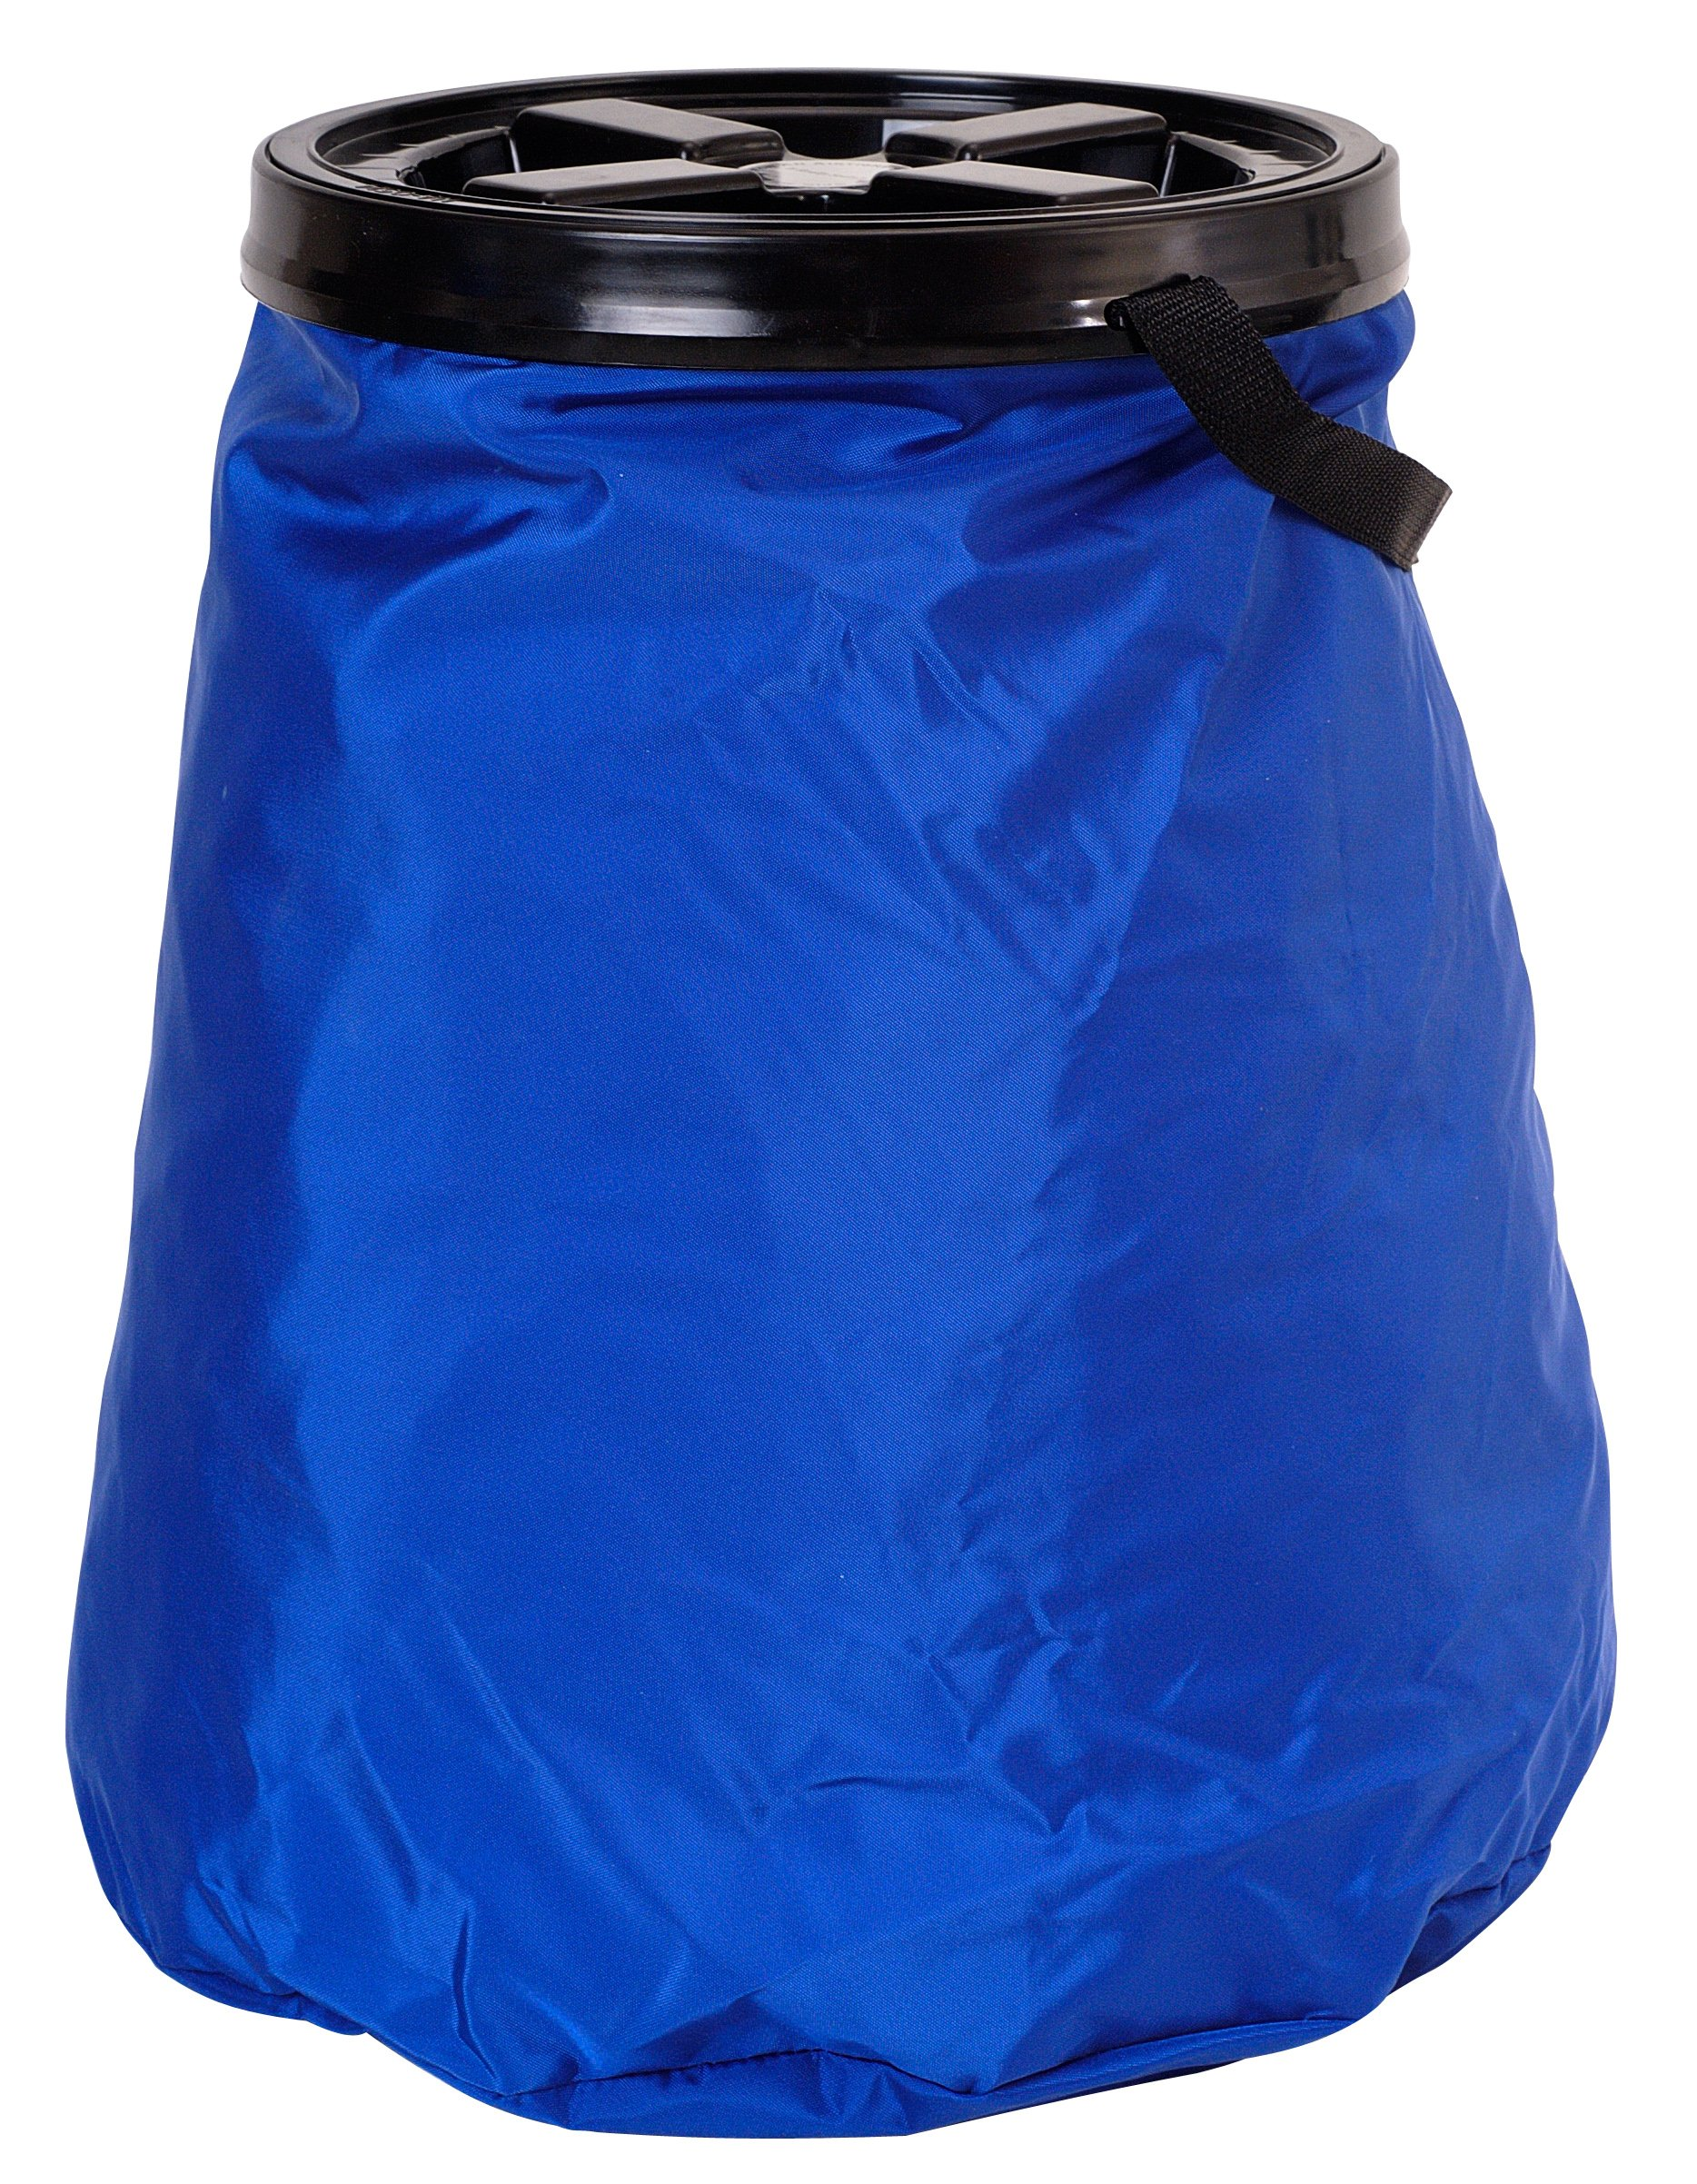 Vittles Vault SoftStore Collapsible, Airtight Pet Food Container 50 Pound Capacity, Blue by Vittles Vault (Image #1)